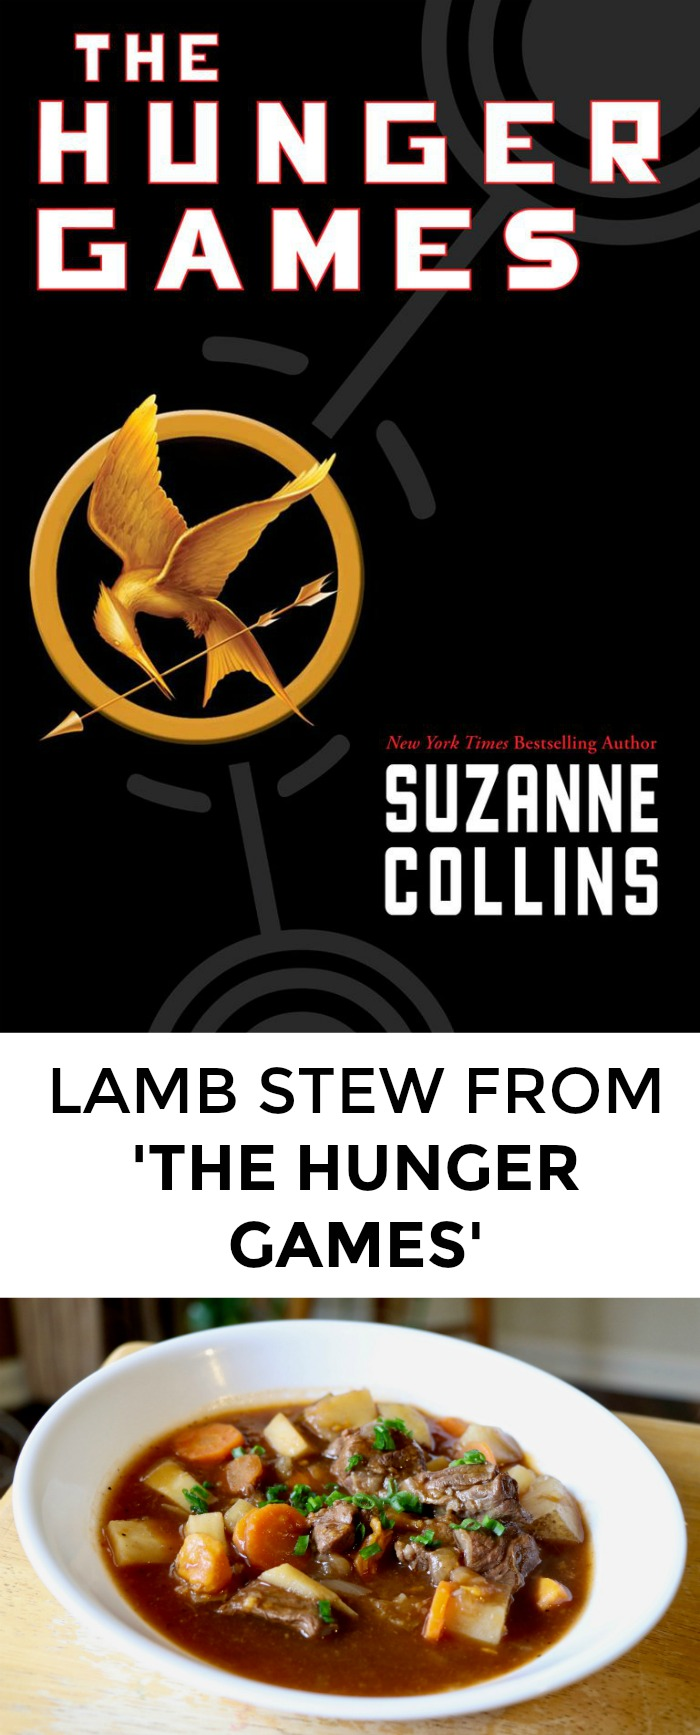 Looking for a Hunger Games recipe to impress your book club? Click through for lamb stew Katniss would love!